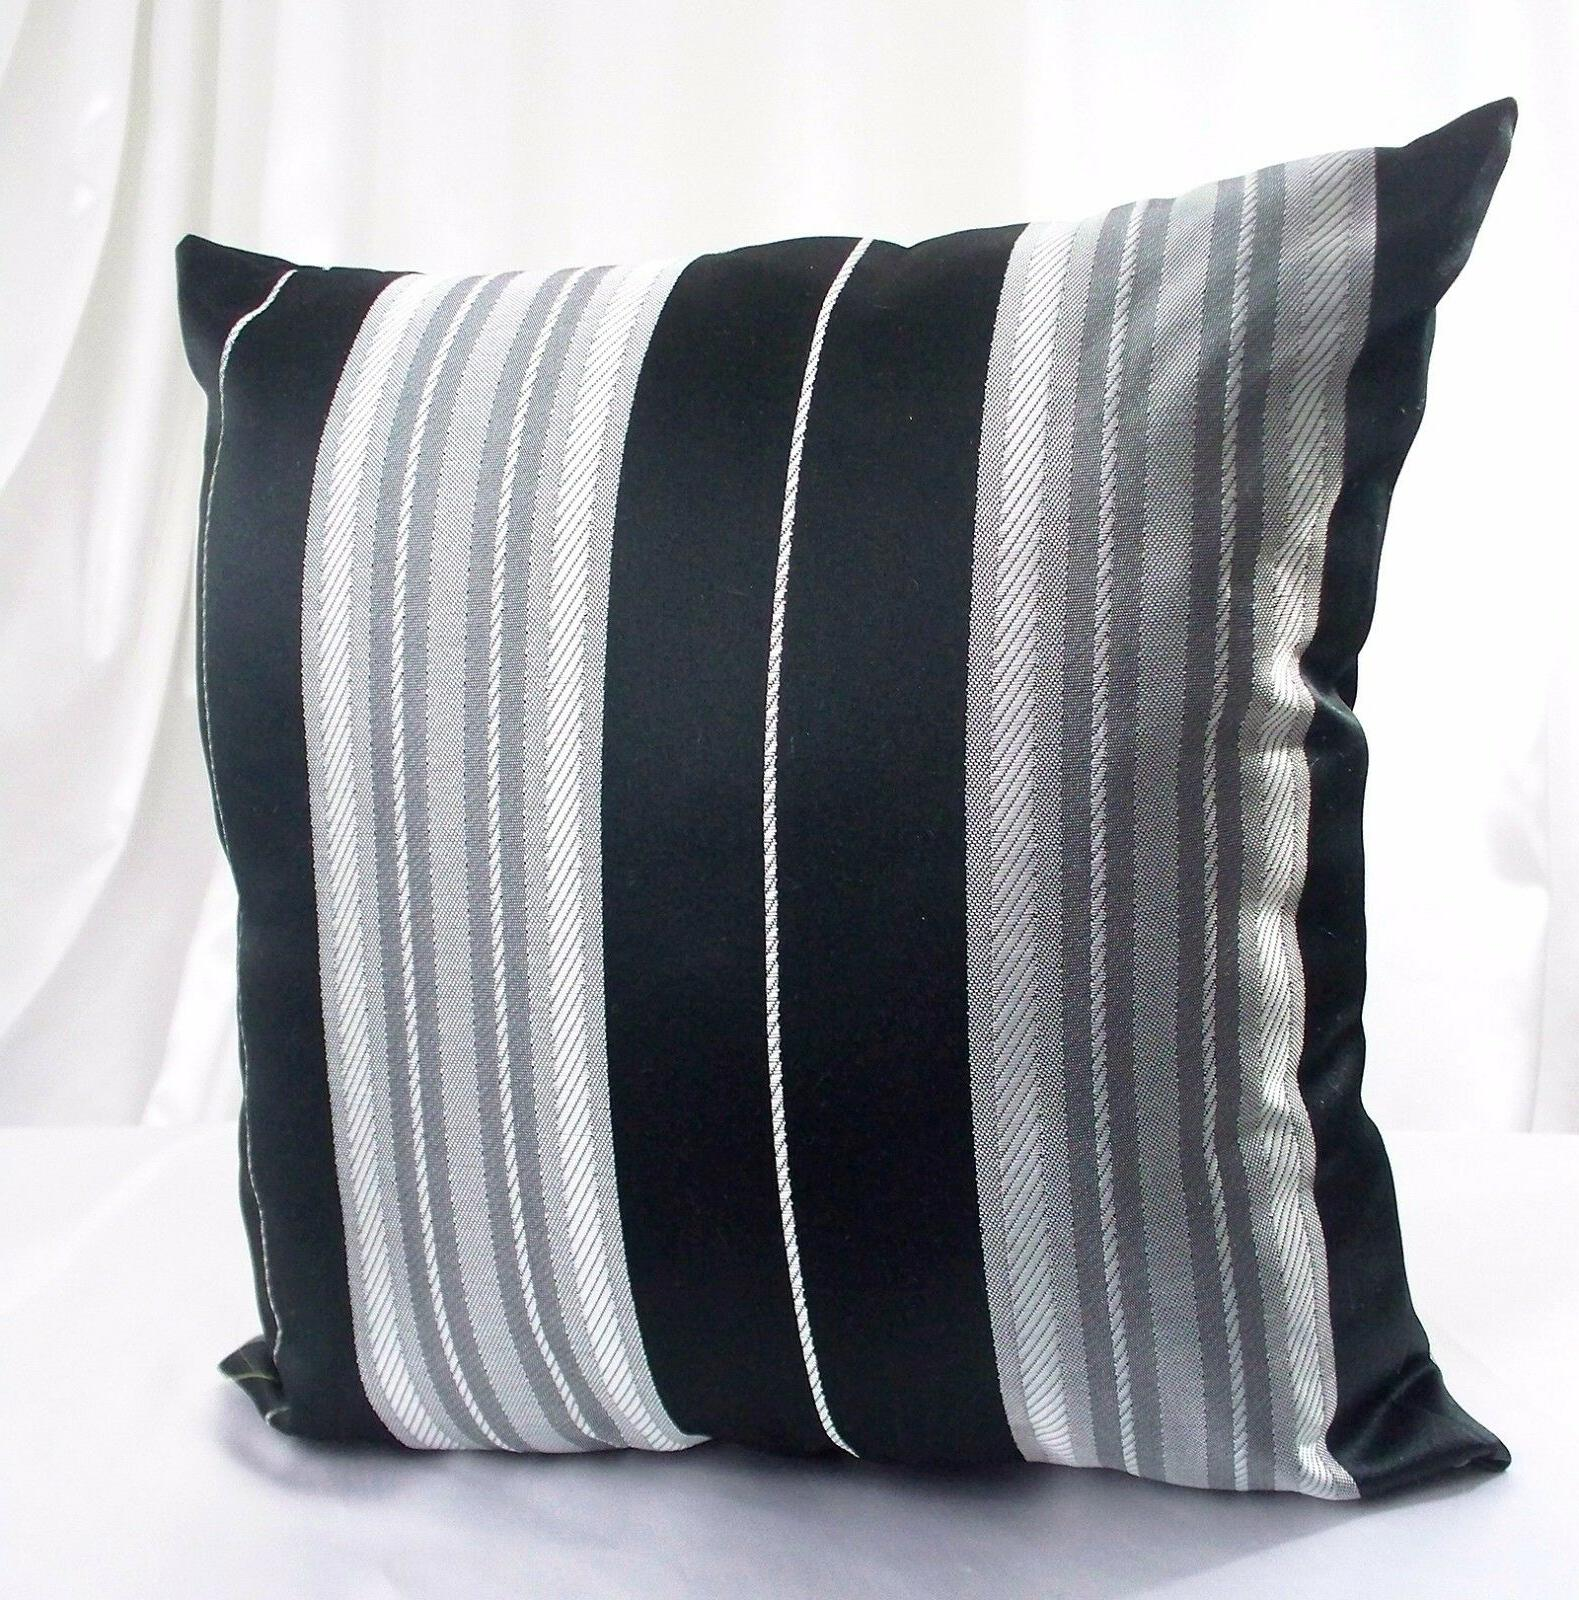 Pillow Cover Black White Cushion Throw Sham Sofa